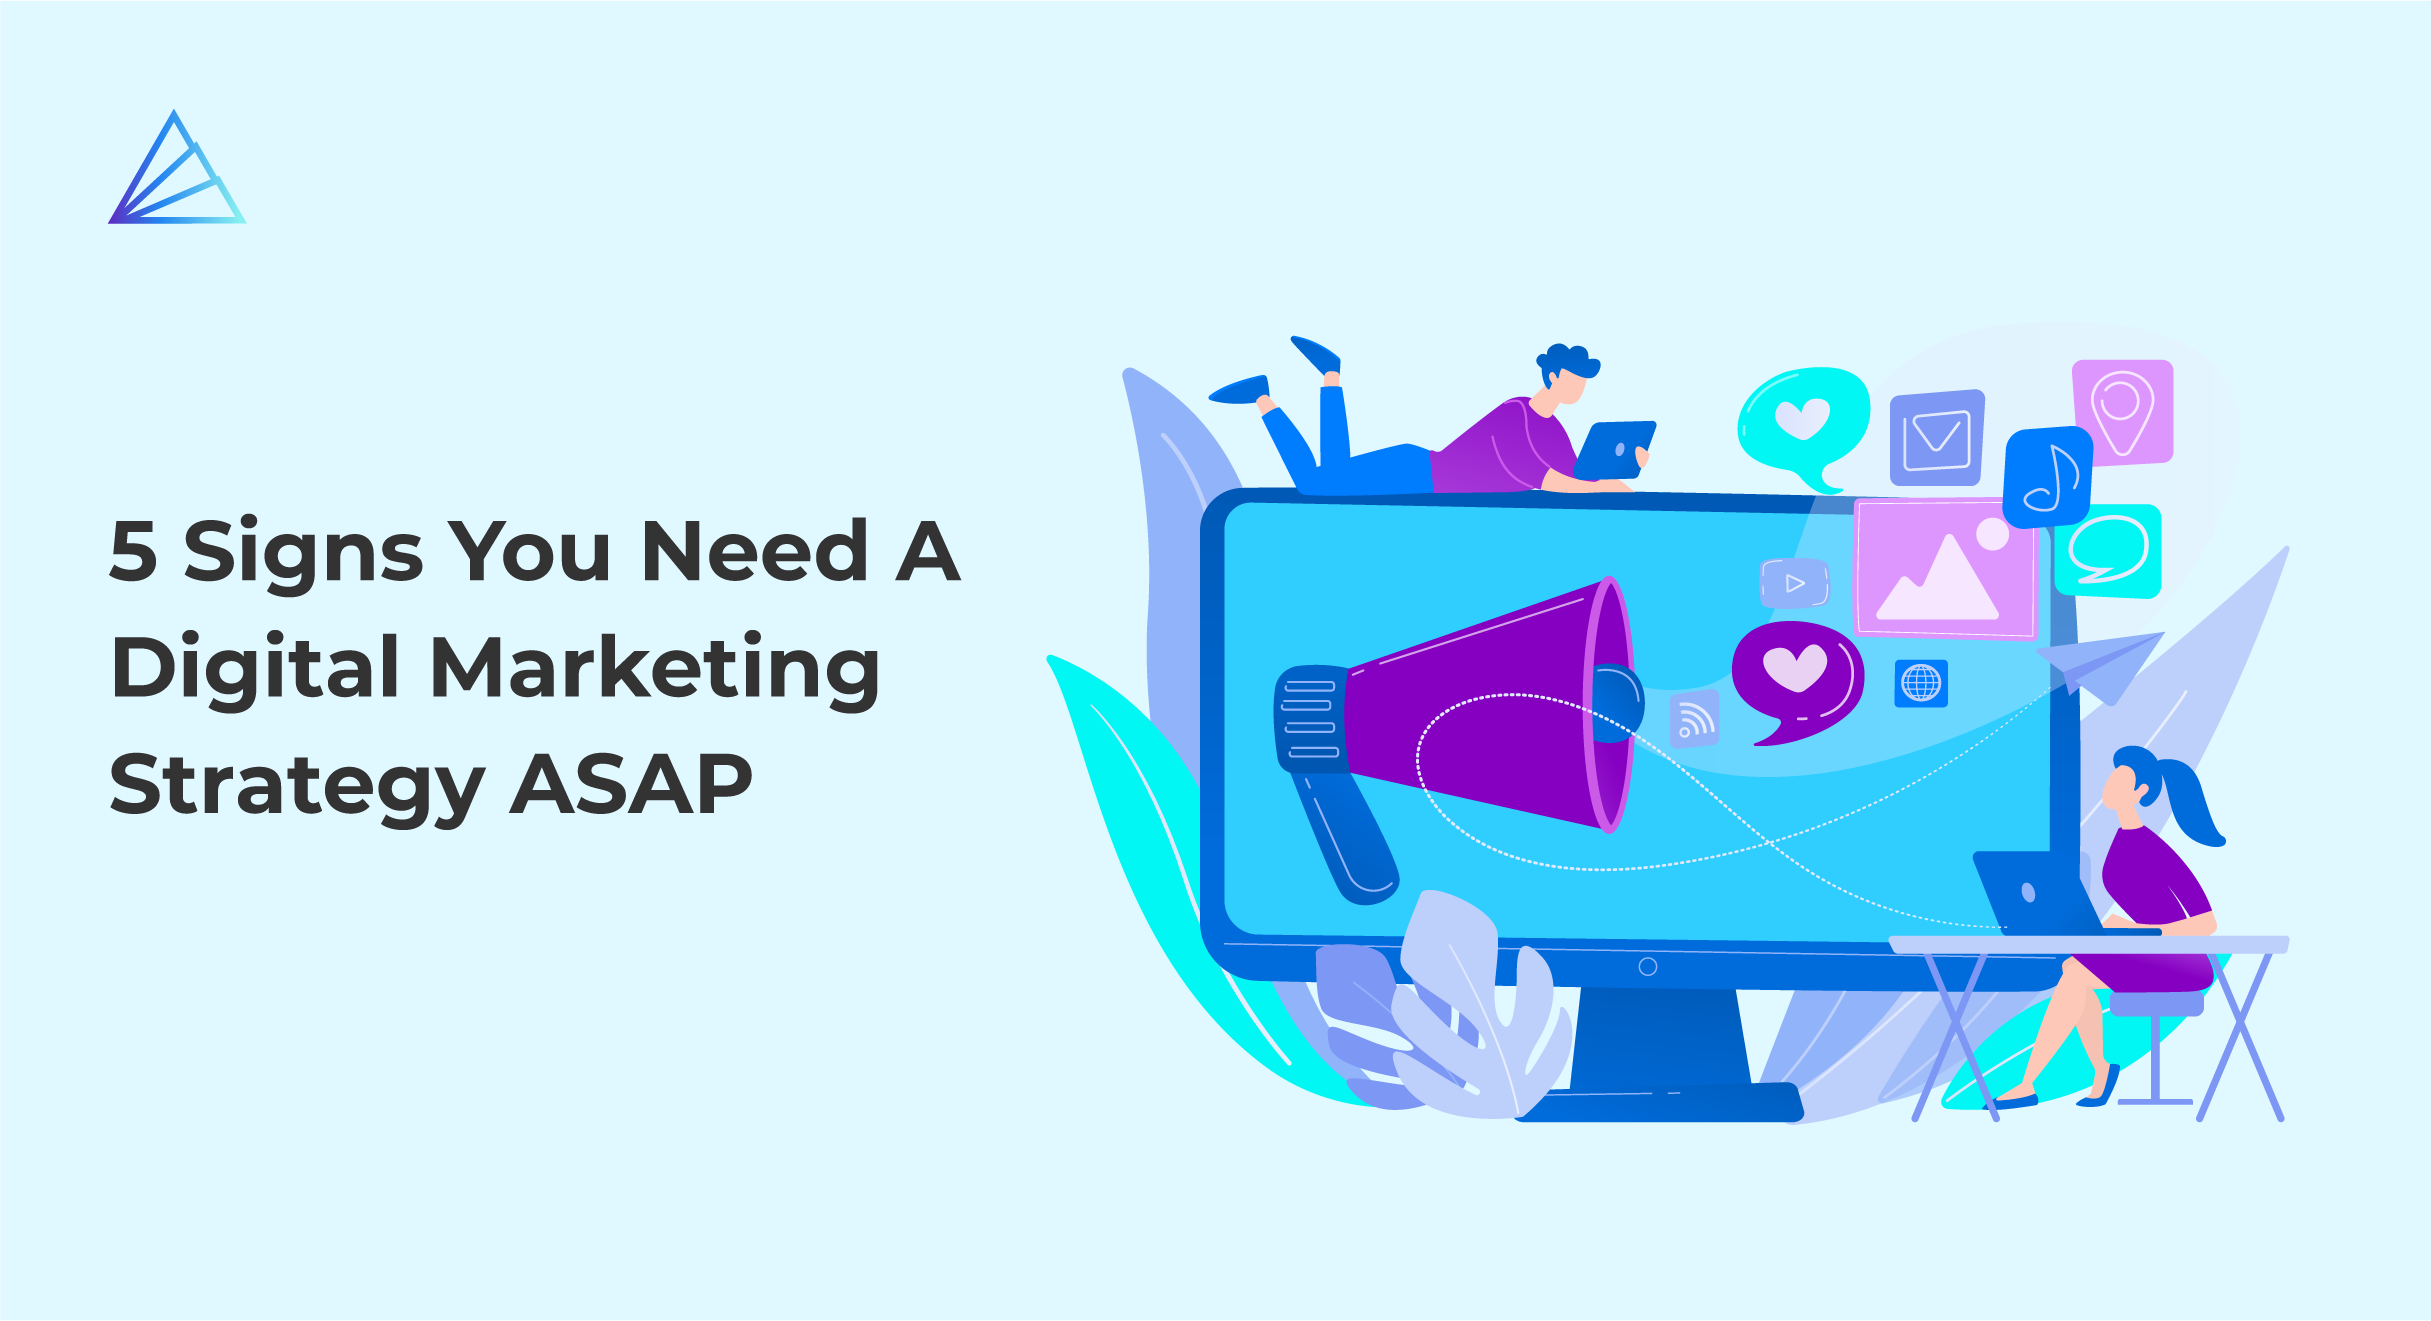 5 Signs You Need A Digital Marketing Strategy ASAP